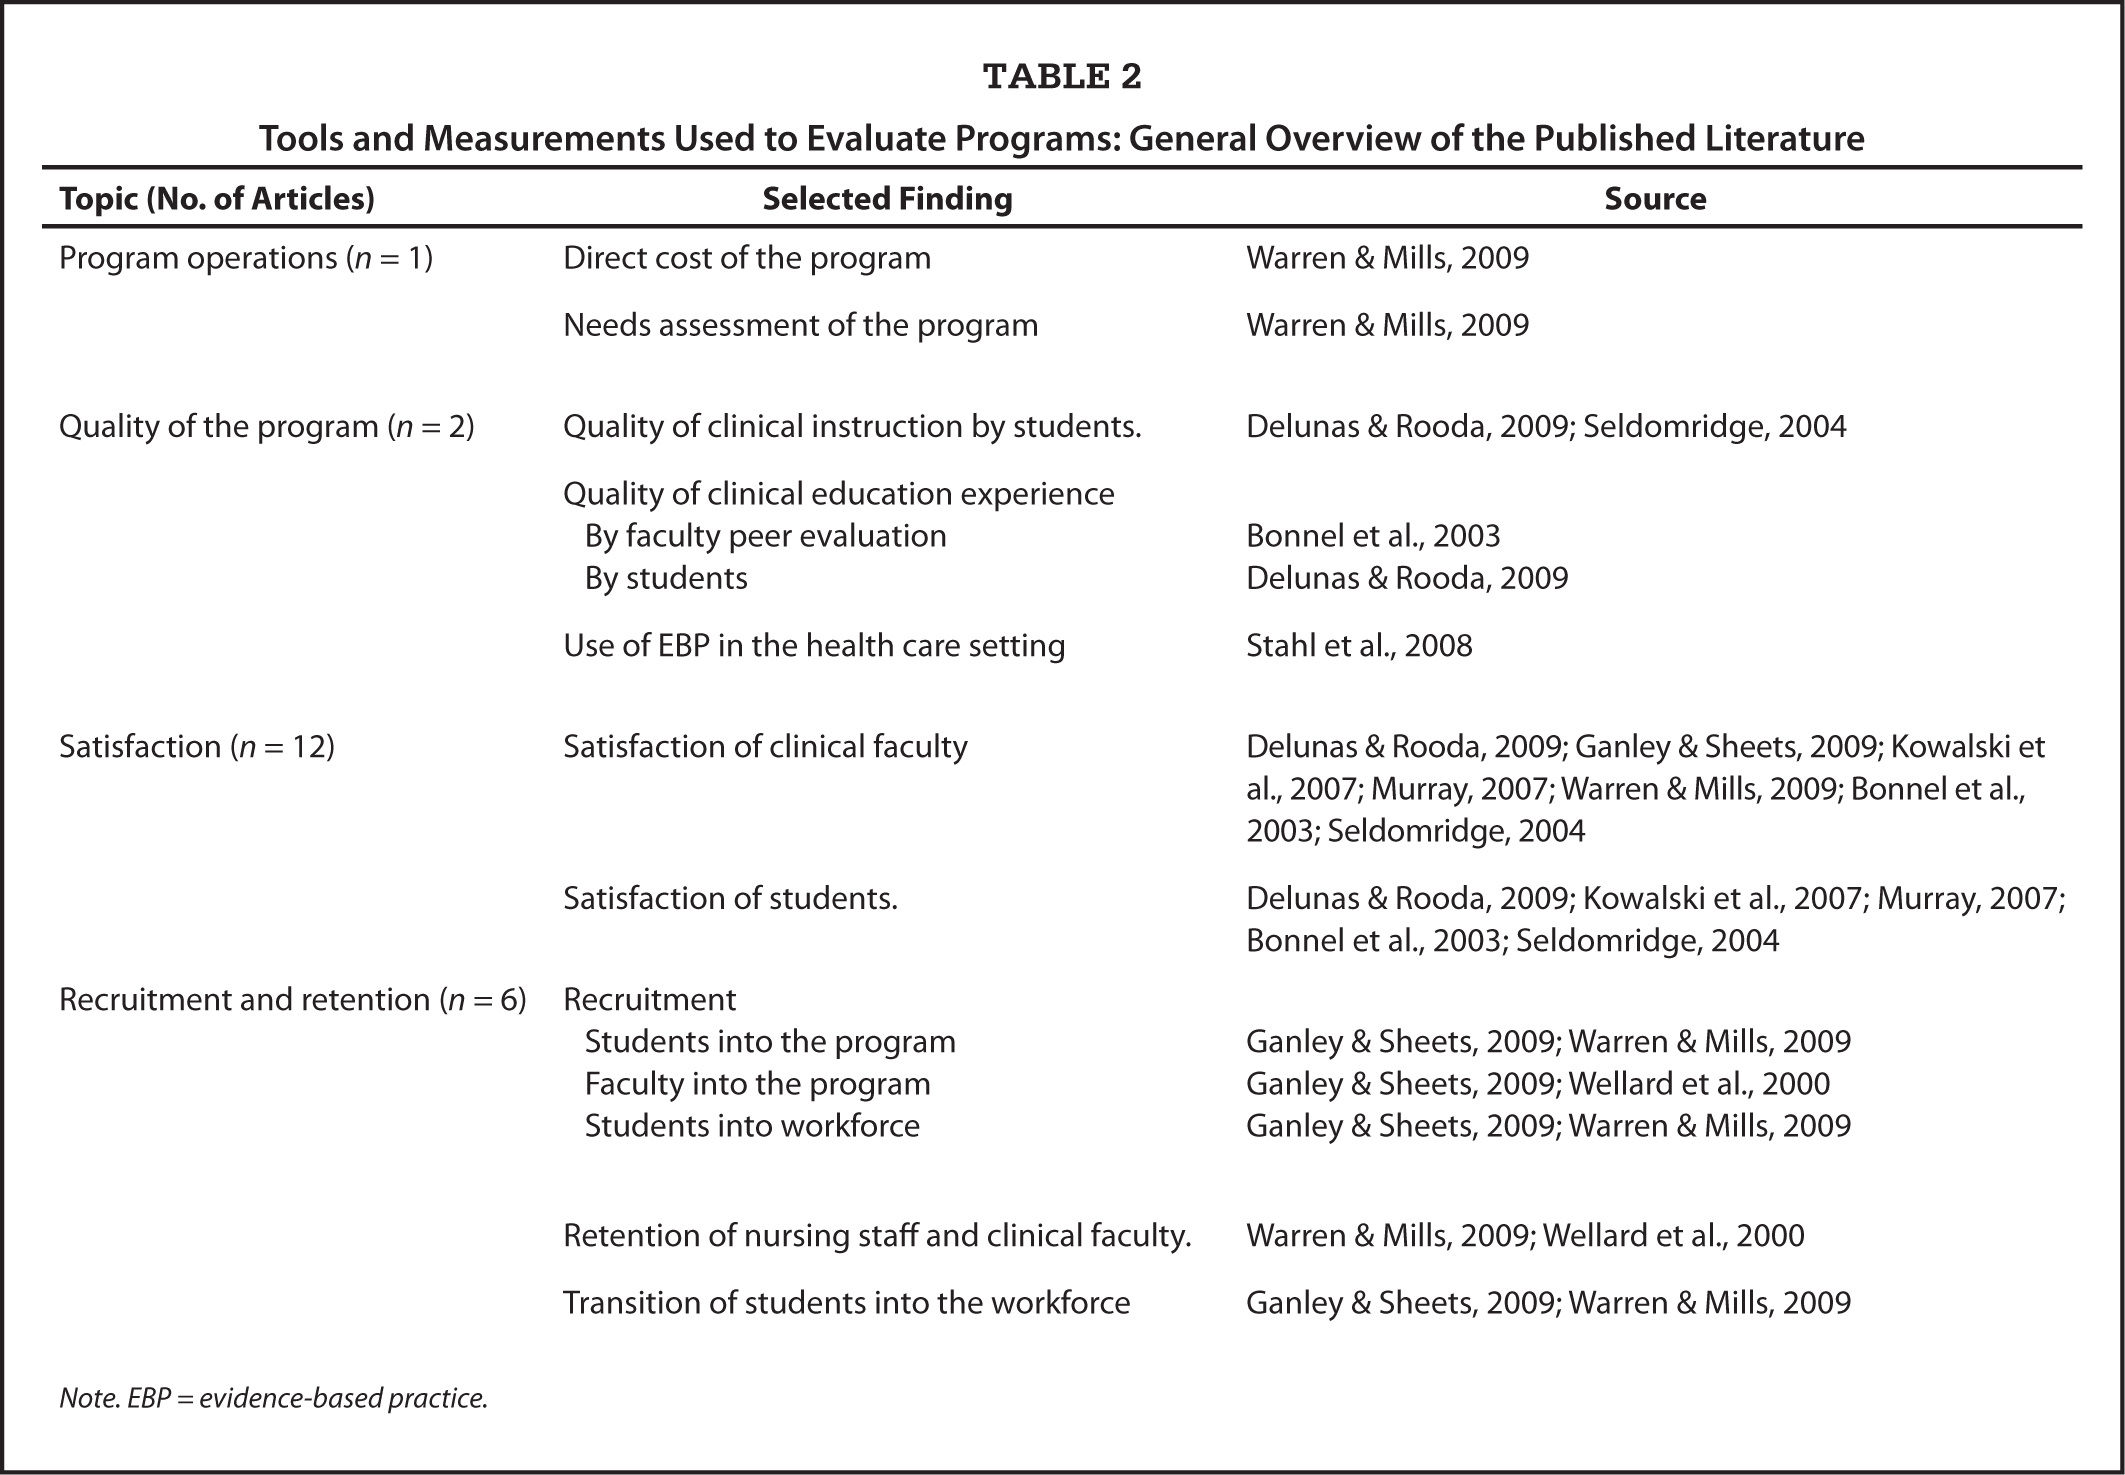 Tools and Measurements Used to Evaluate Programs: General Overview of the Published Literature